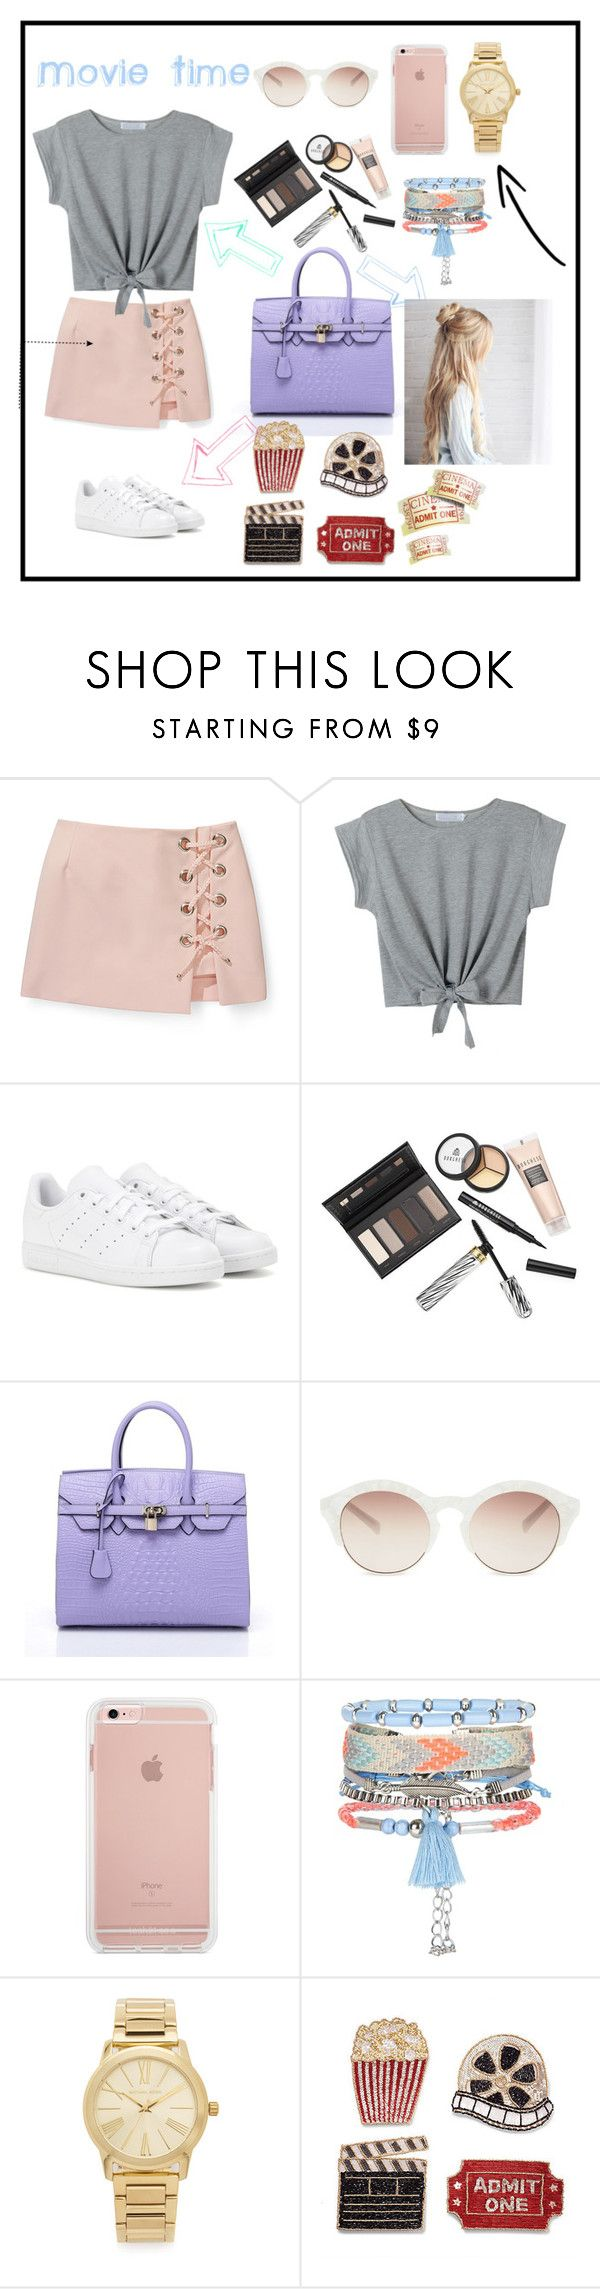 """Movie Time (Day 3) in LA"" by iamanabasco ❤ liked on Polyvore featuring Rebecca Minkoff, WithChic, adidas, Borghese, self-portrait, New Look, Michael Kors and Frontgate"